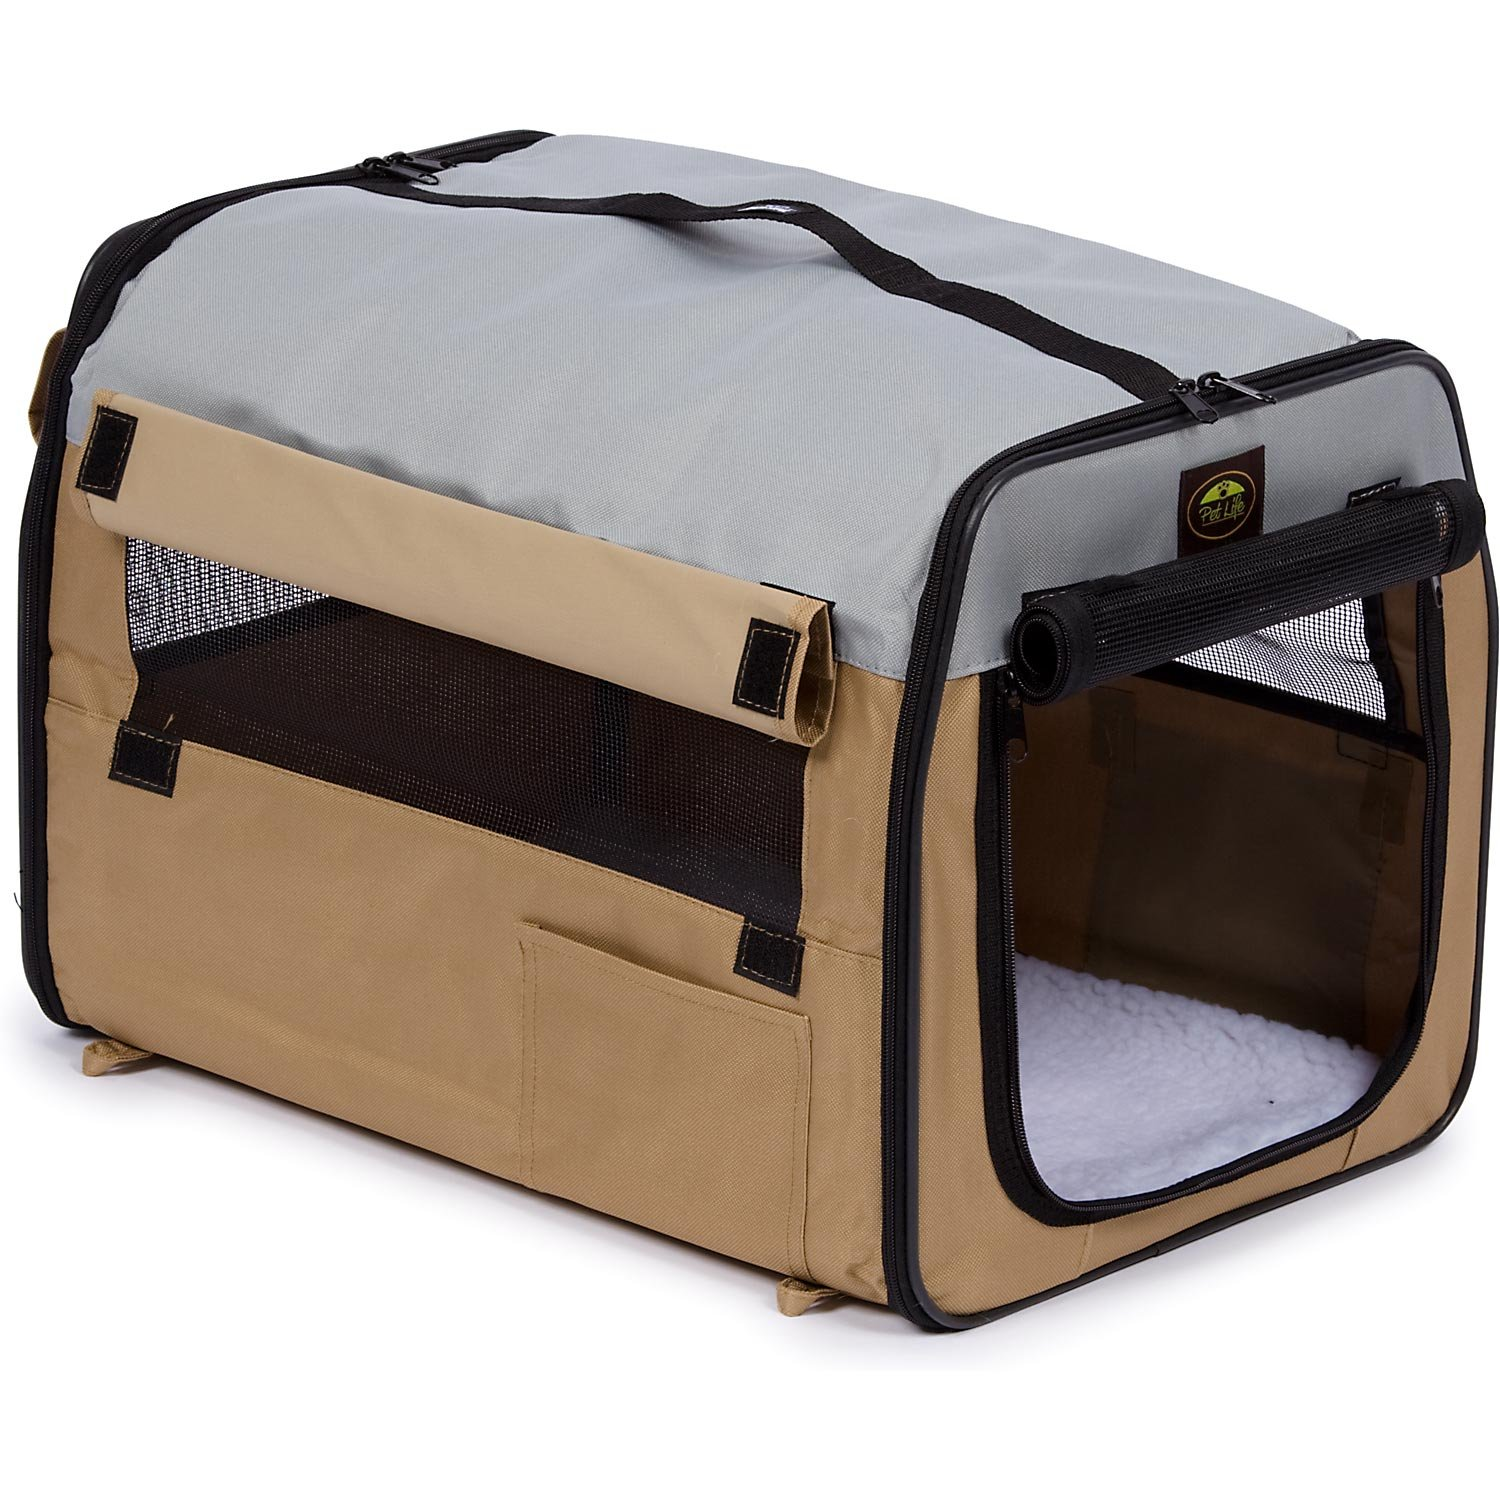 PET LIFE 'Easy Folding' Zippered Folding Collapsible Wire Framed Lightweight Pet Dog Crate Carrier, X-Large, Khaki by Pet Life